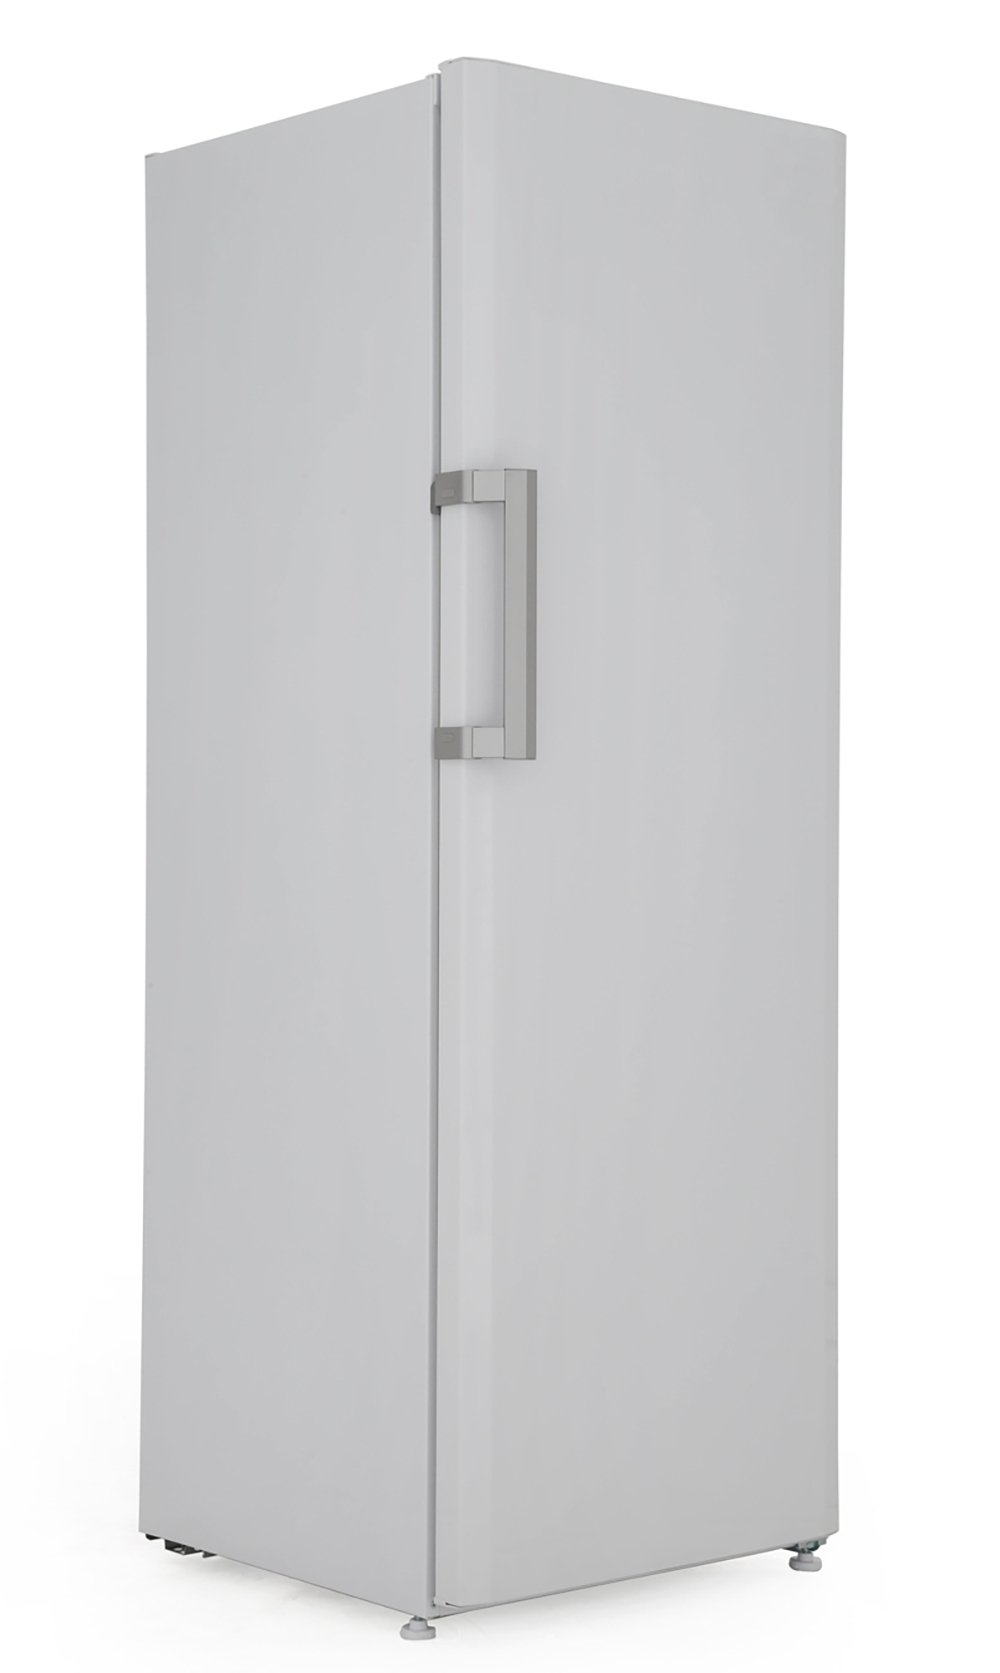 Blomberg SOM9673P Tall Larder Fridge